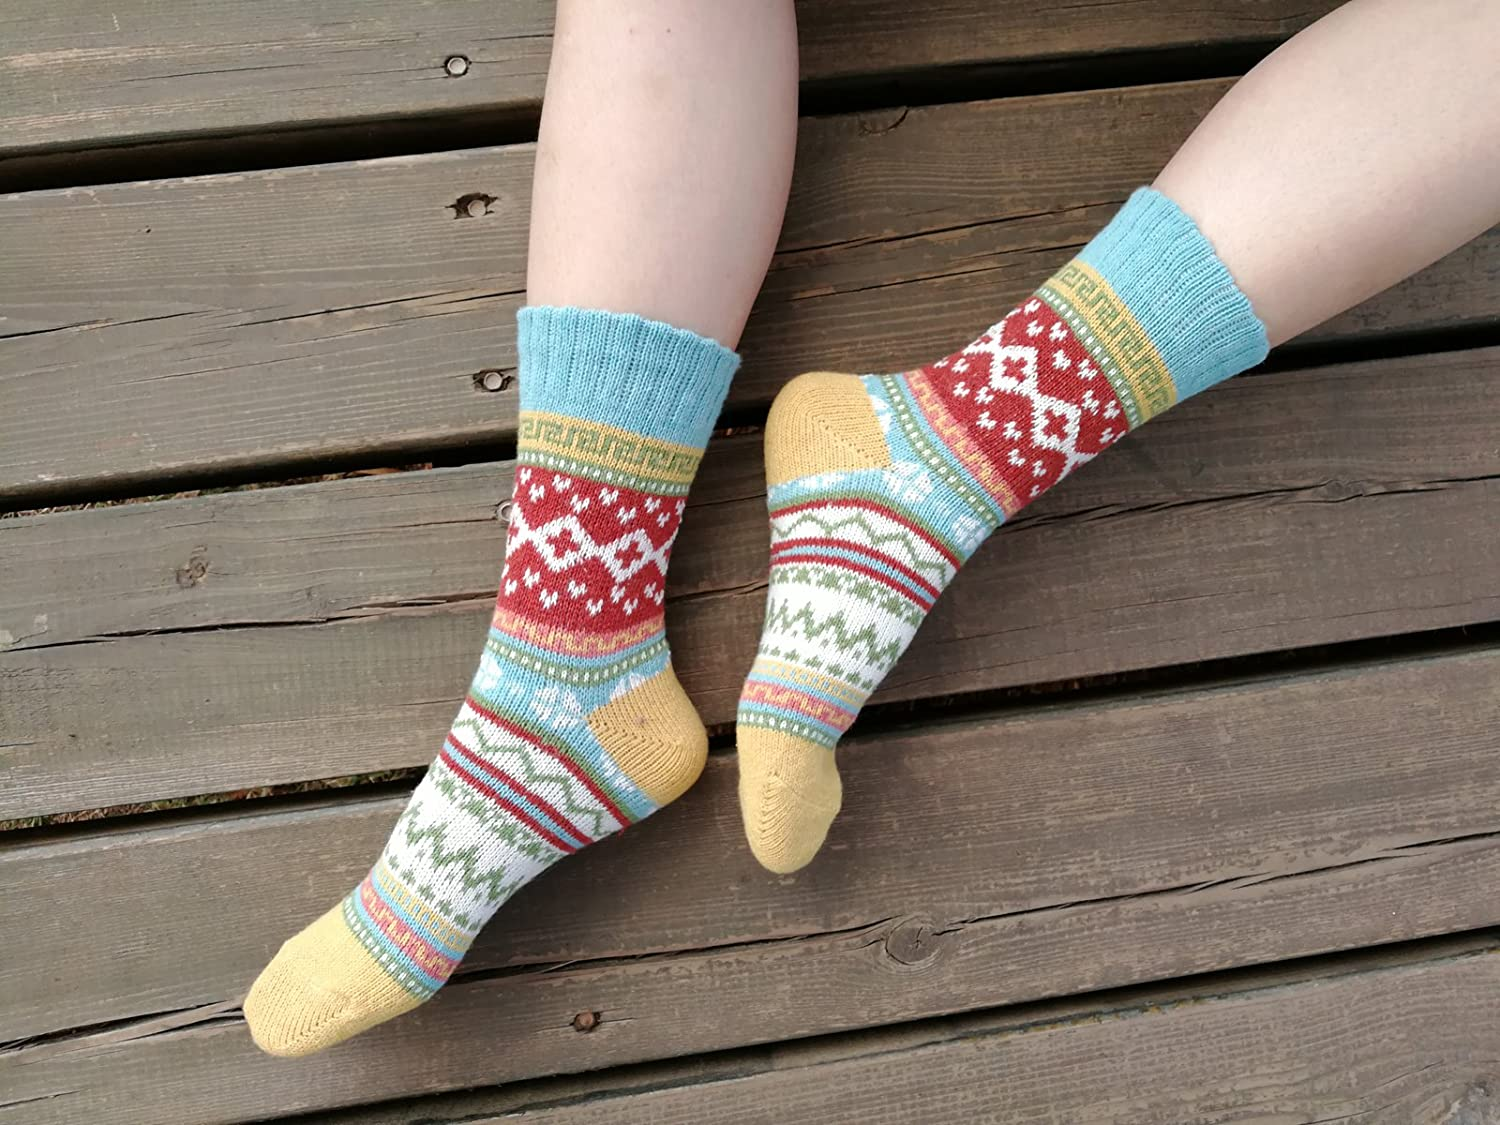 YZKKE 5Pack Womens Vintage Winter Soft Warm Thick Cold Knit Wool Crew Socks free size Multicolor